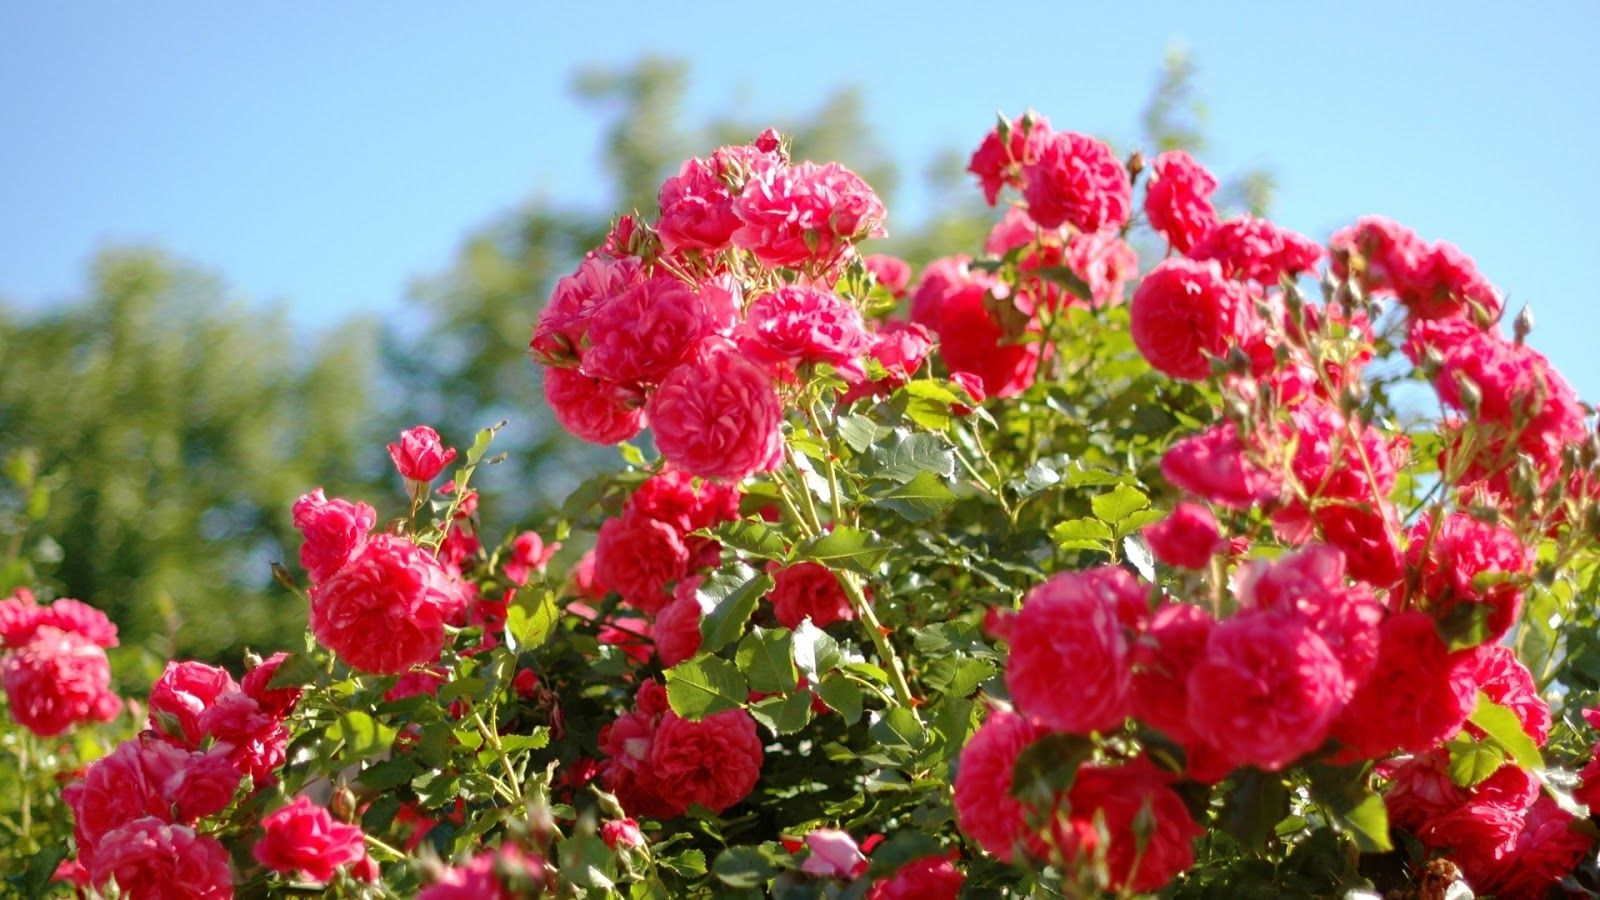 rose garden wallpapers | ゆ | pinterest | gardens